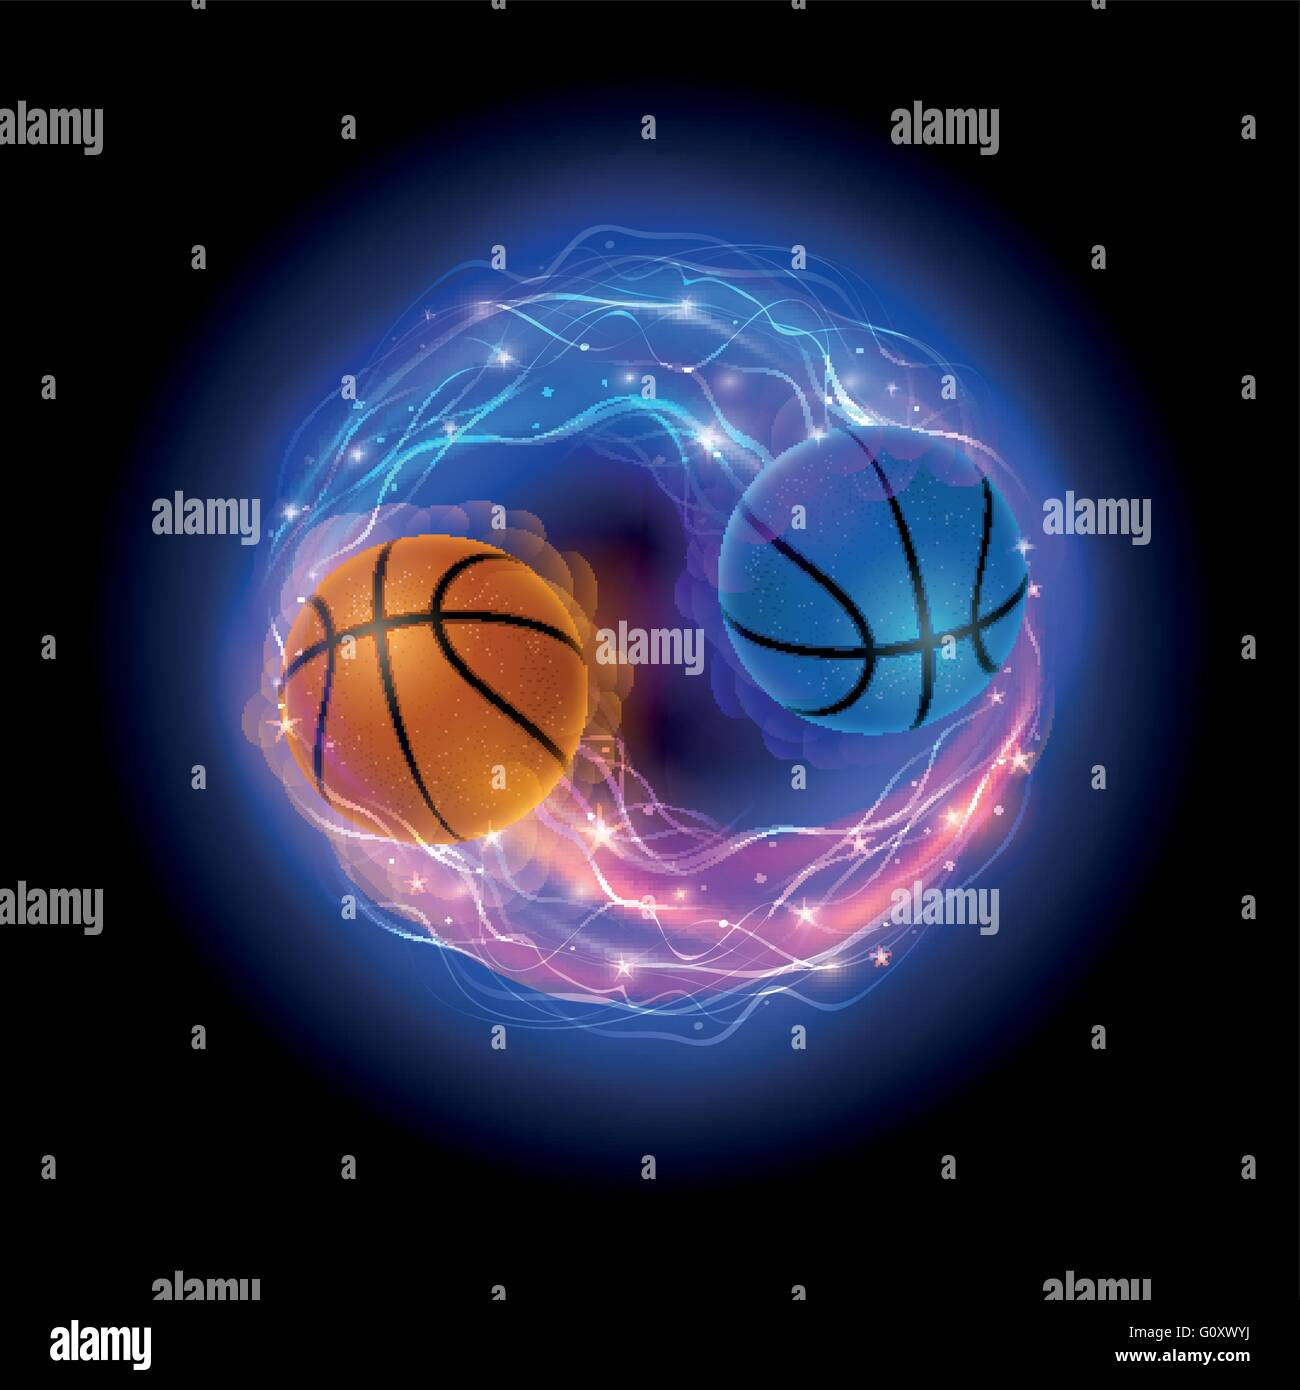 Basketball Ball In Flames And Lights Against Black Background Vector Stock Vector Image Art Alamy